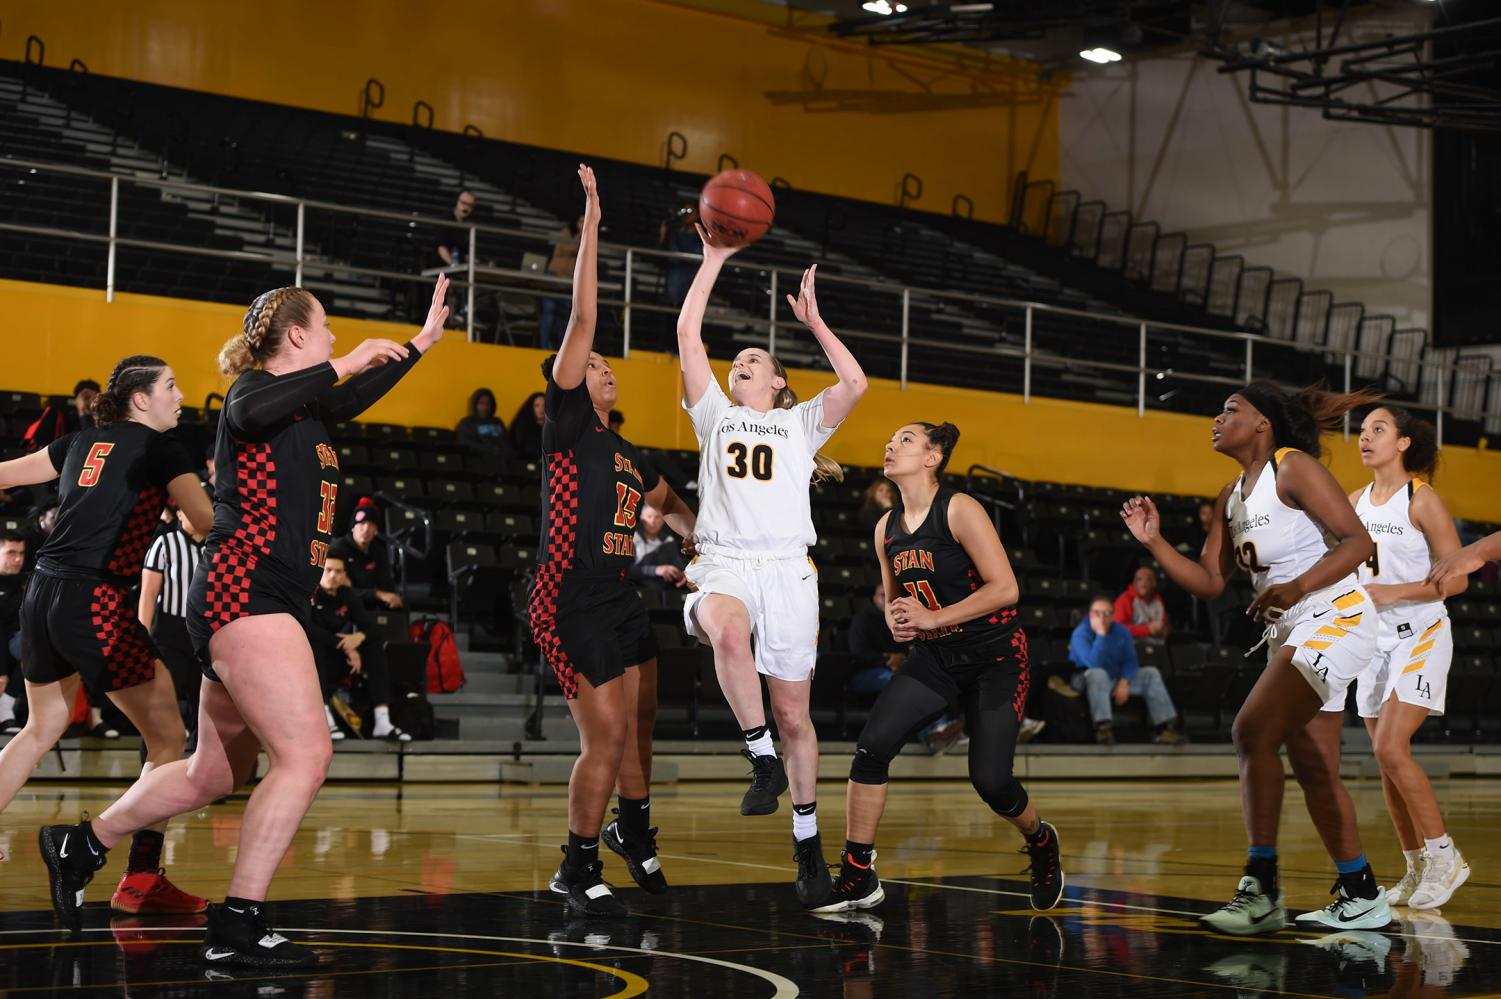 Cal State LA's women's basketball takes home a win against Stanislaus State 69-60